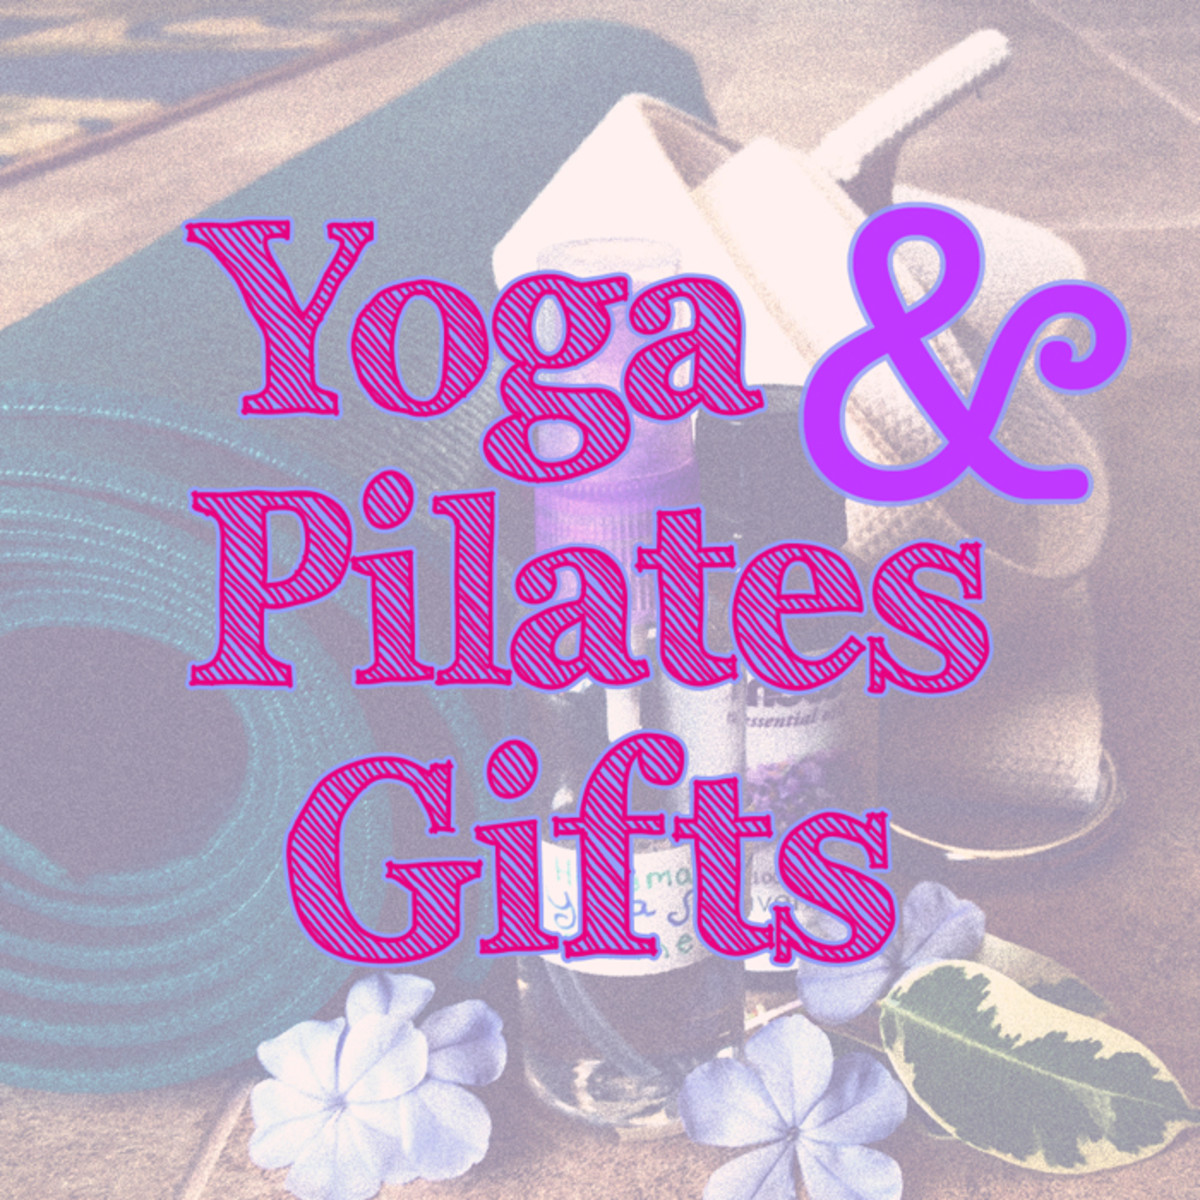 10 Gifts for Yoga and Pilates Lovers